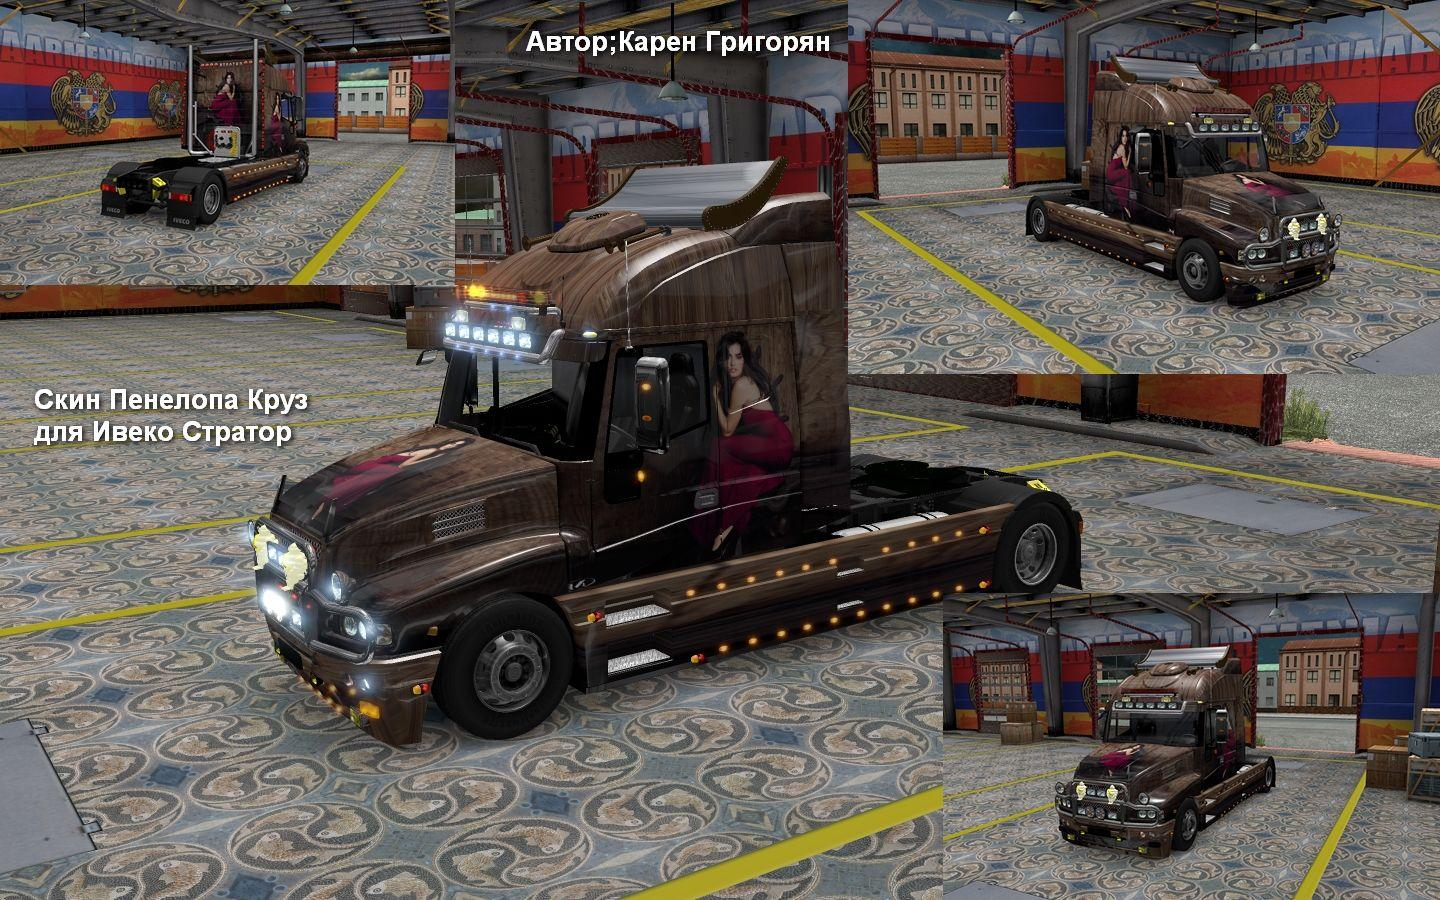 Iveco strator and volvo fh 2013 tuning euro truck simulator 2 mods - Iveco Strator Girl Skin Pack V2 1 22 Ets 2 Mods Euro